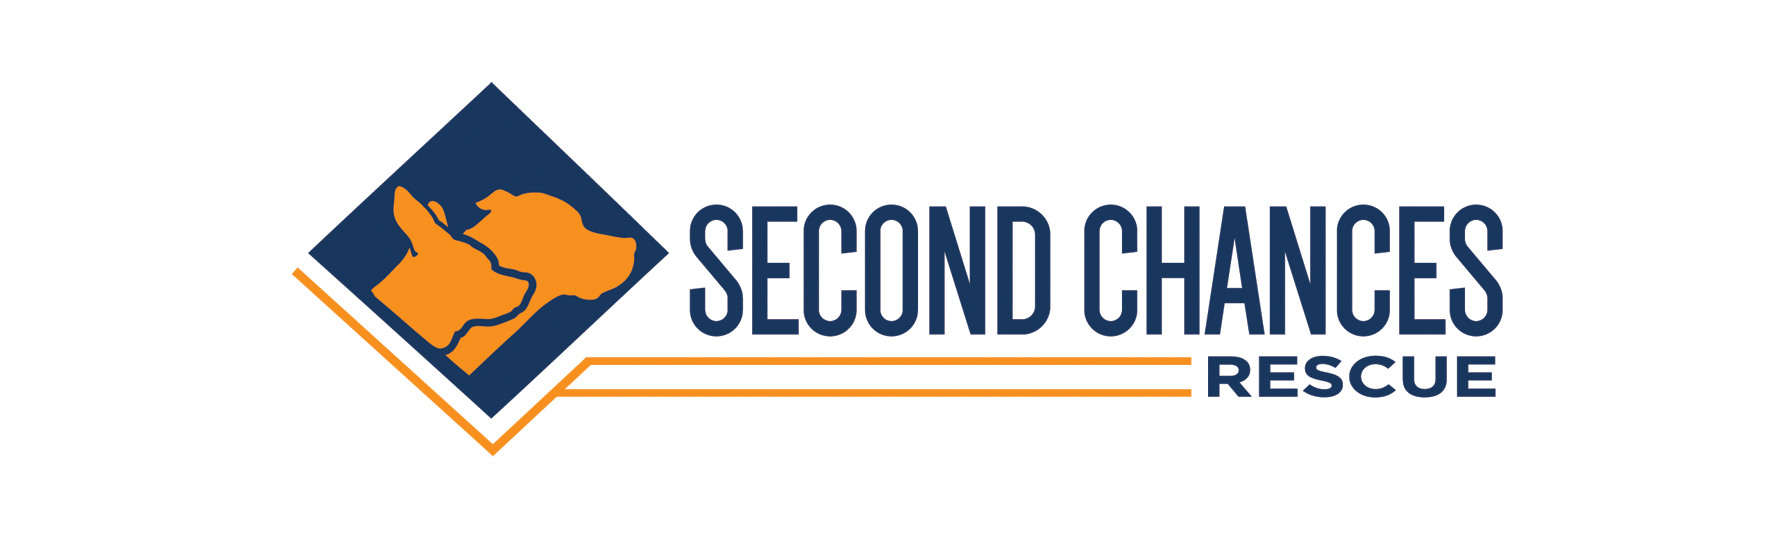 Second Chances Rescue Inc.